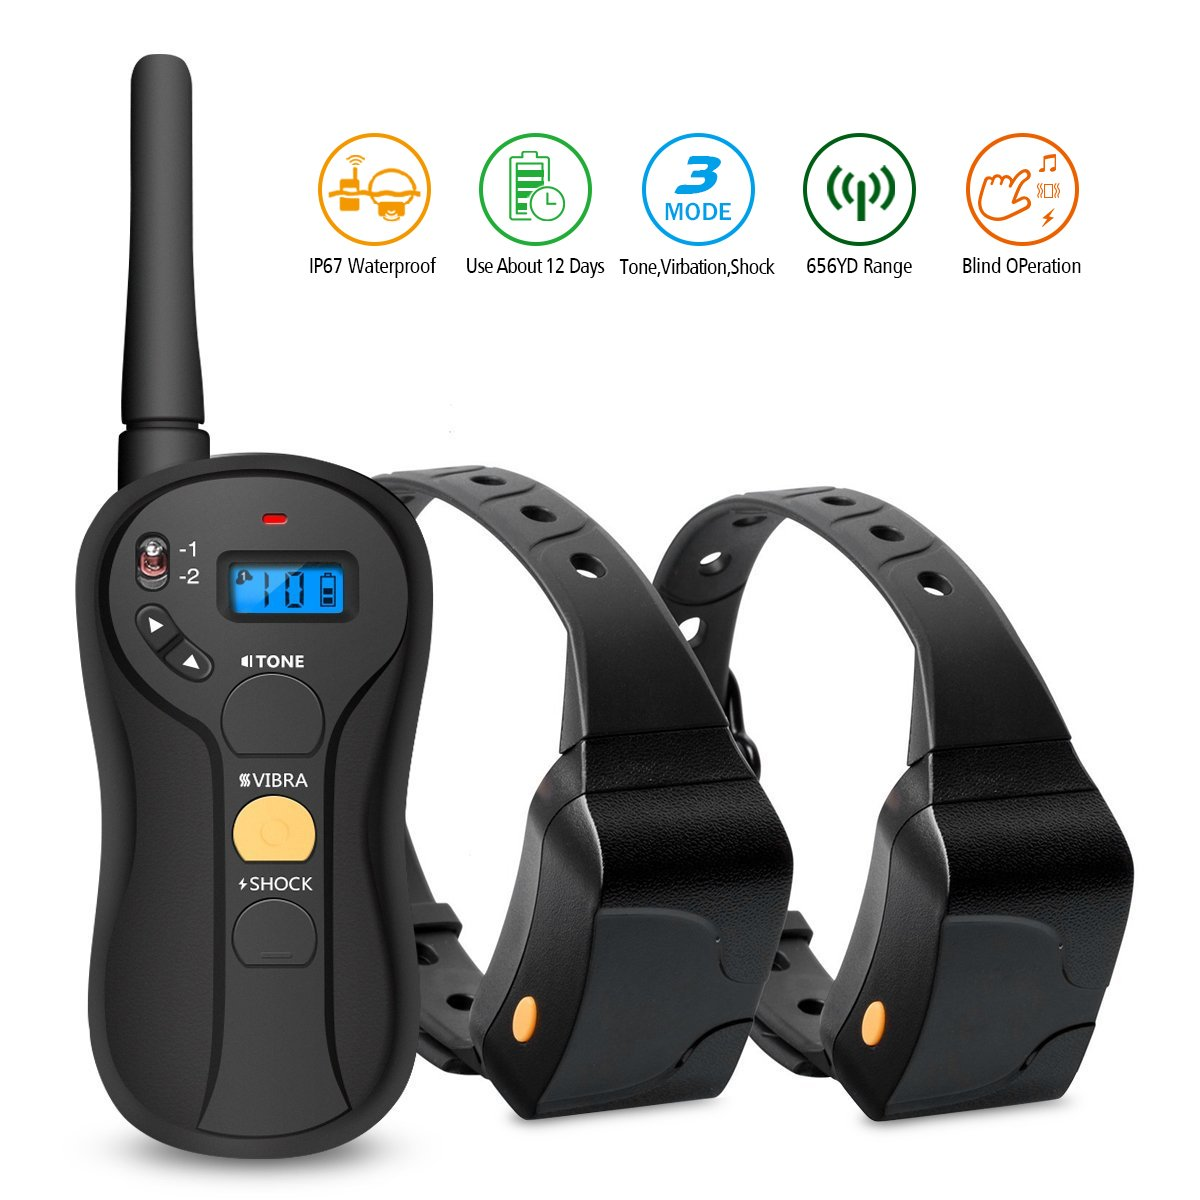 Dog Training Shock Collar, Focuspet Dog Training Collar with Remote Vibration, Beep,Electric Shock Rechargeable and Waterproof Remote Trainer E-Collar for All Size Dogs